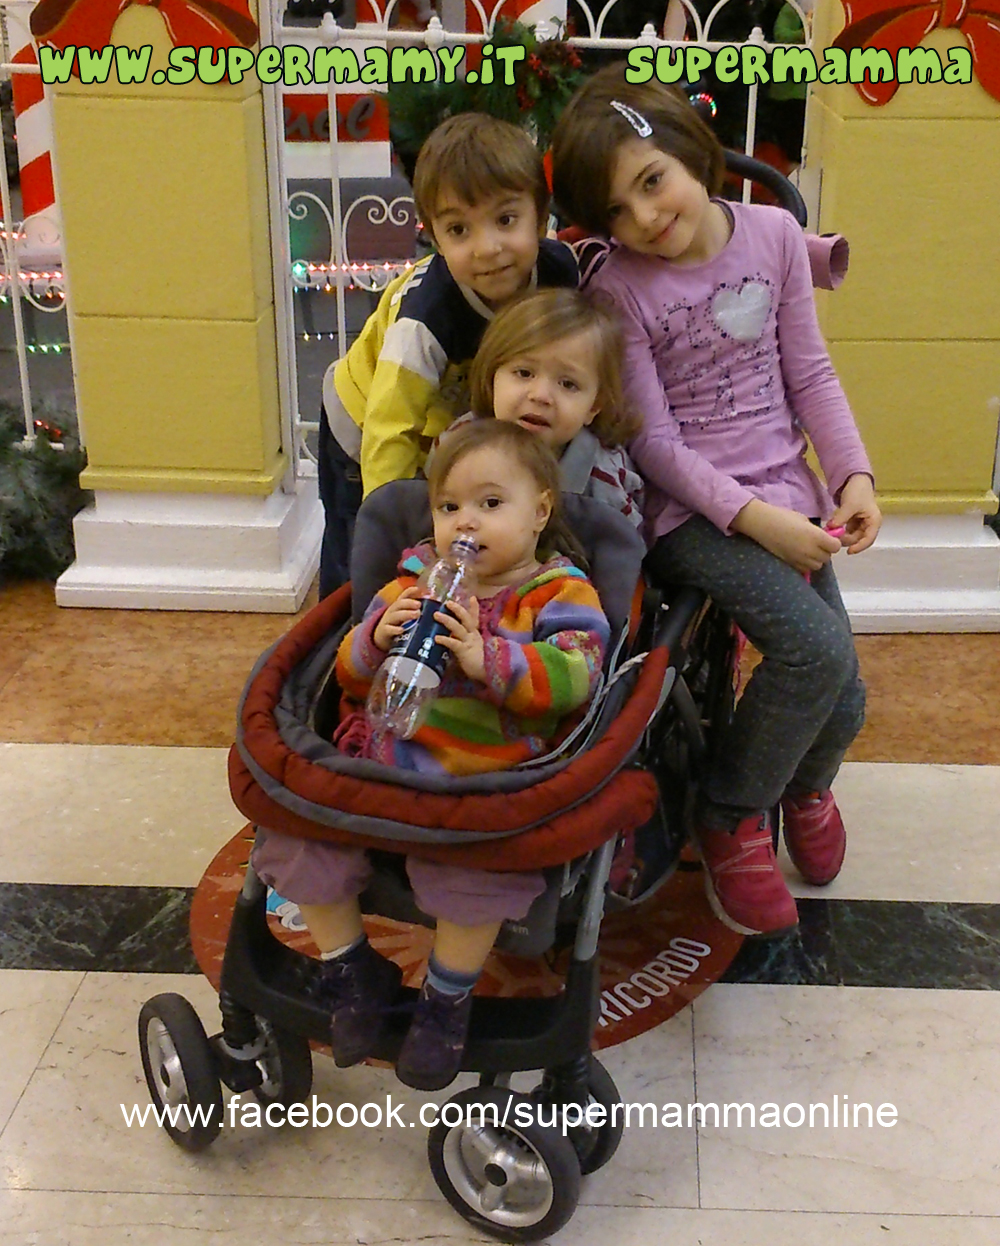 Centro commerciale on i bambini